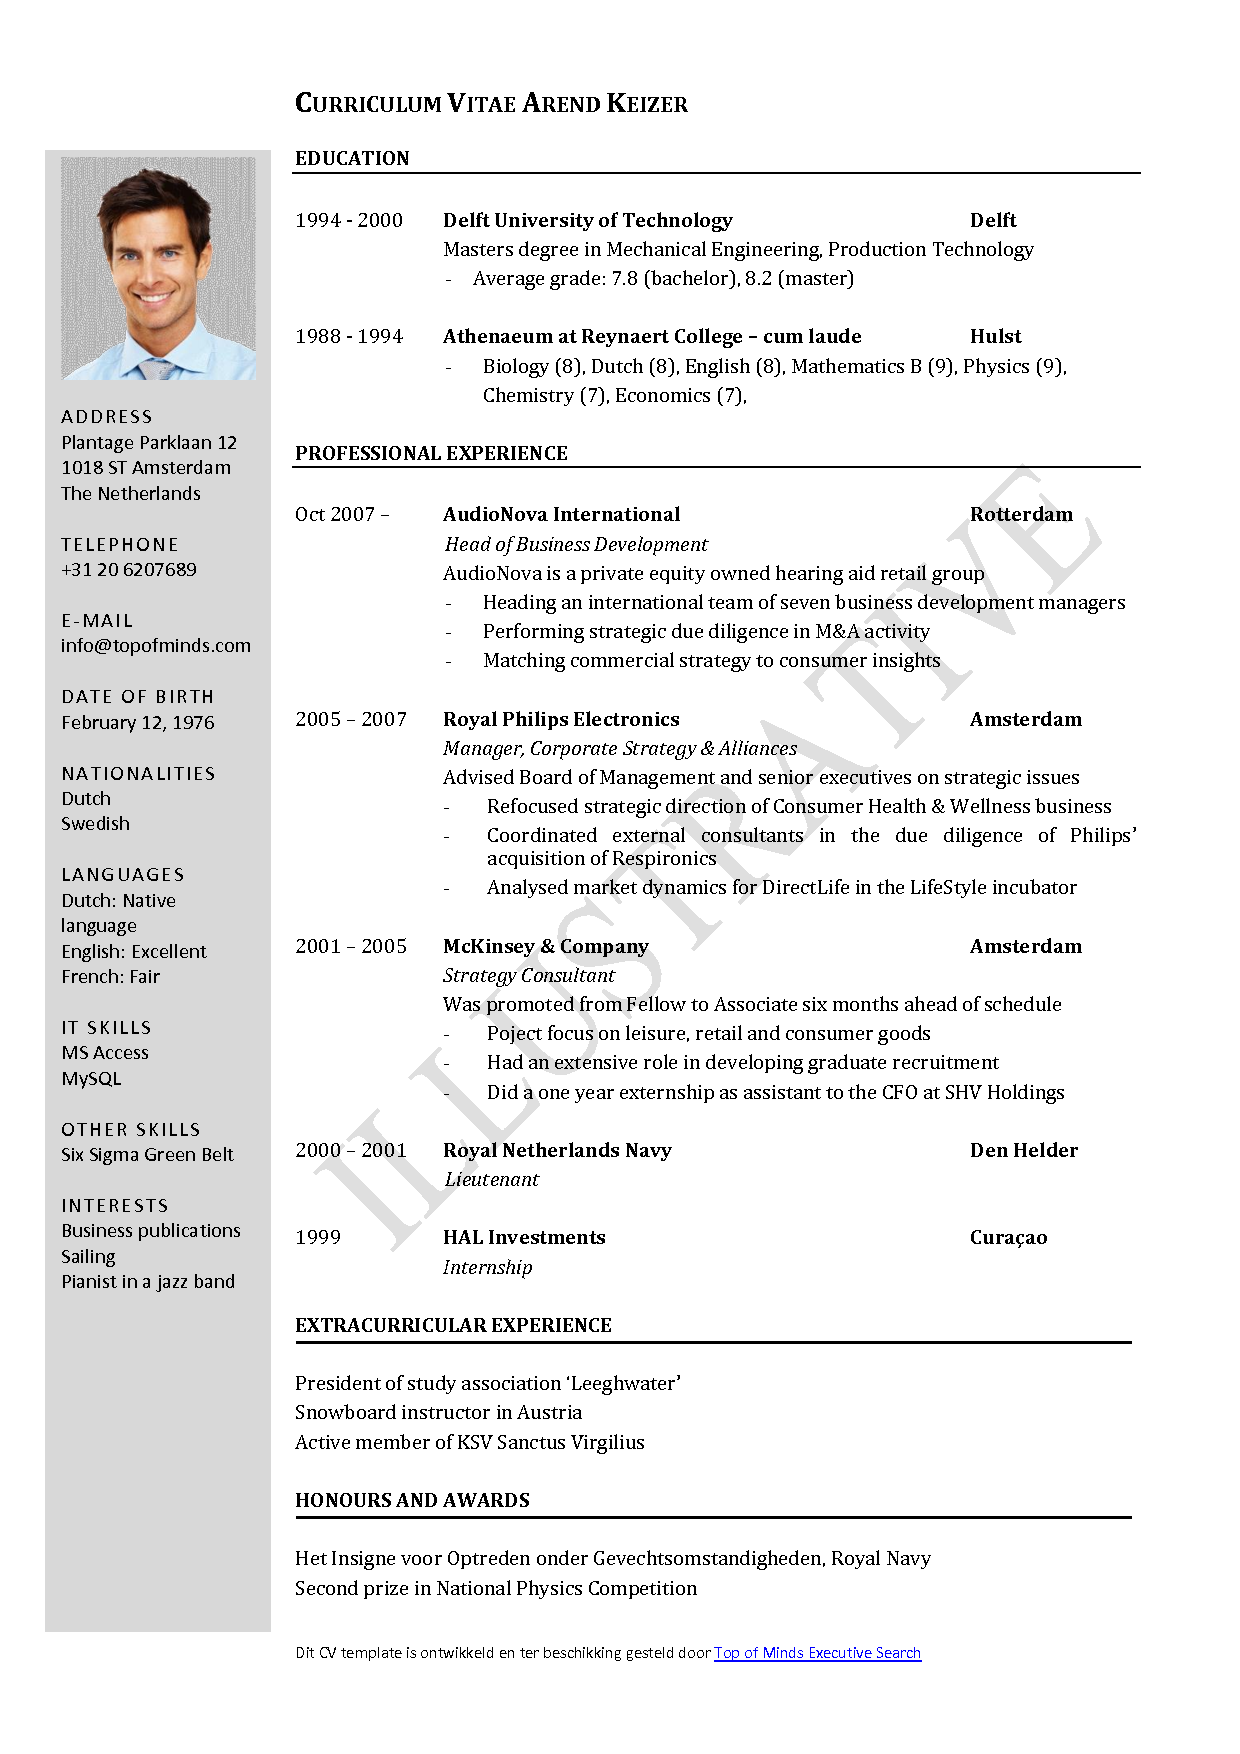 resume Resume Template Download free curriculum vitae template word download cv when i template